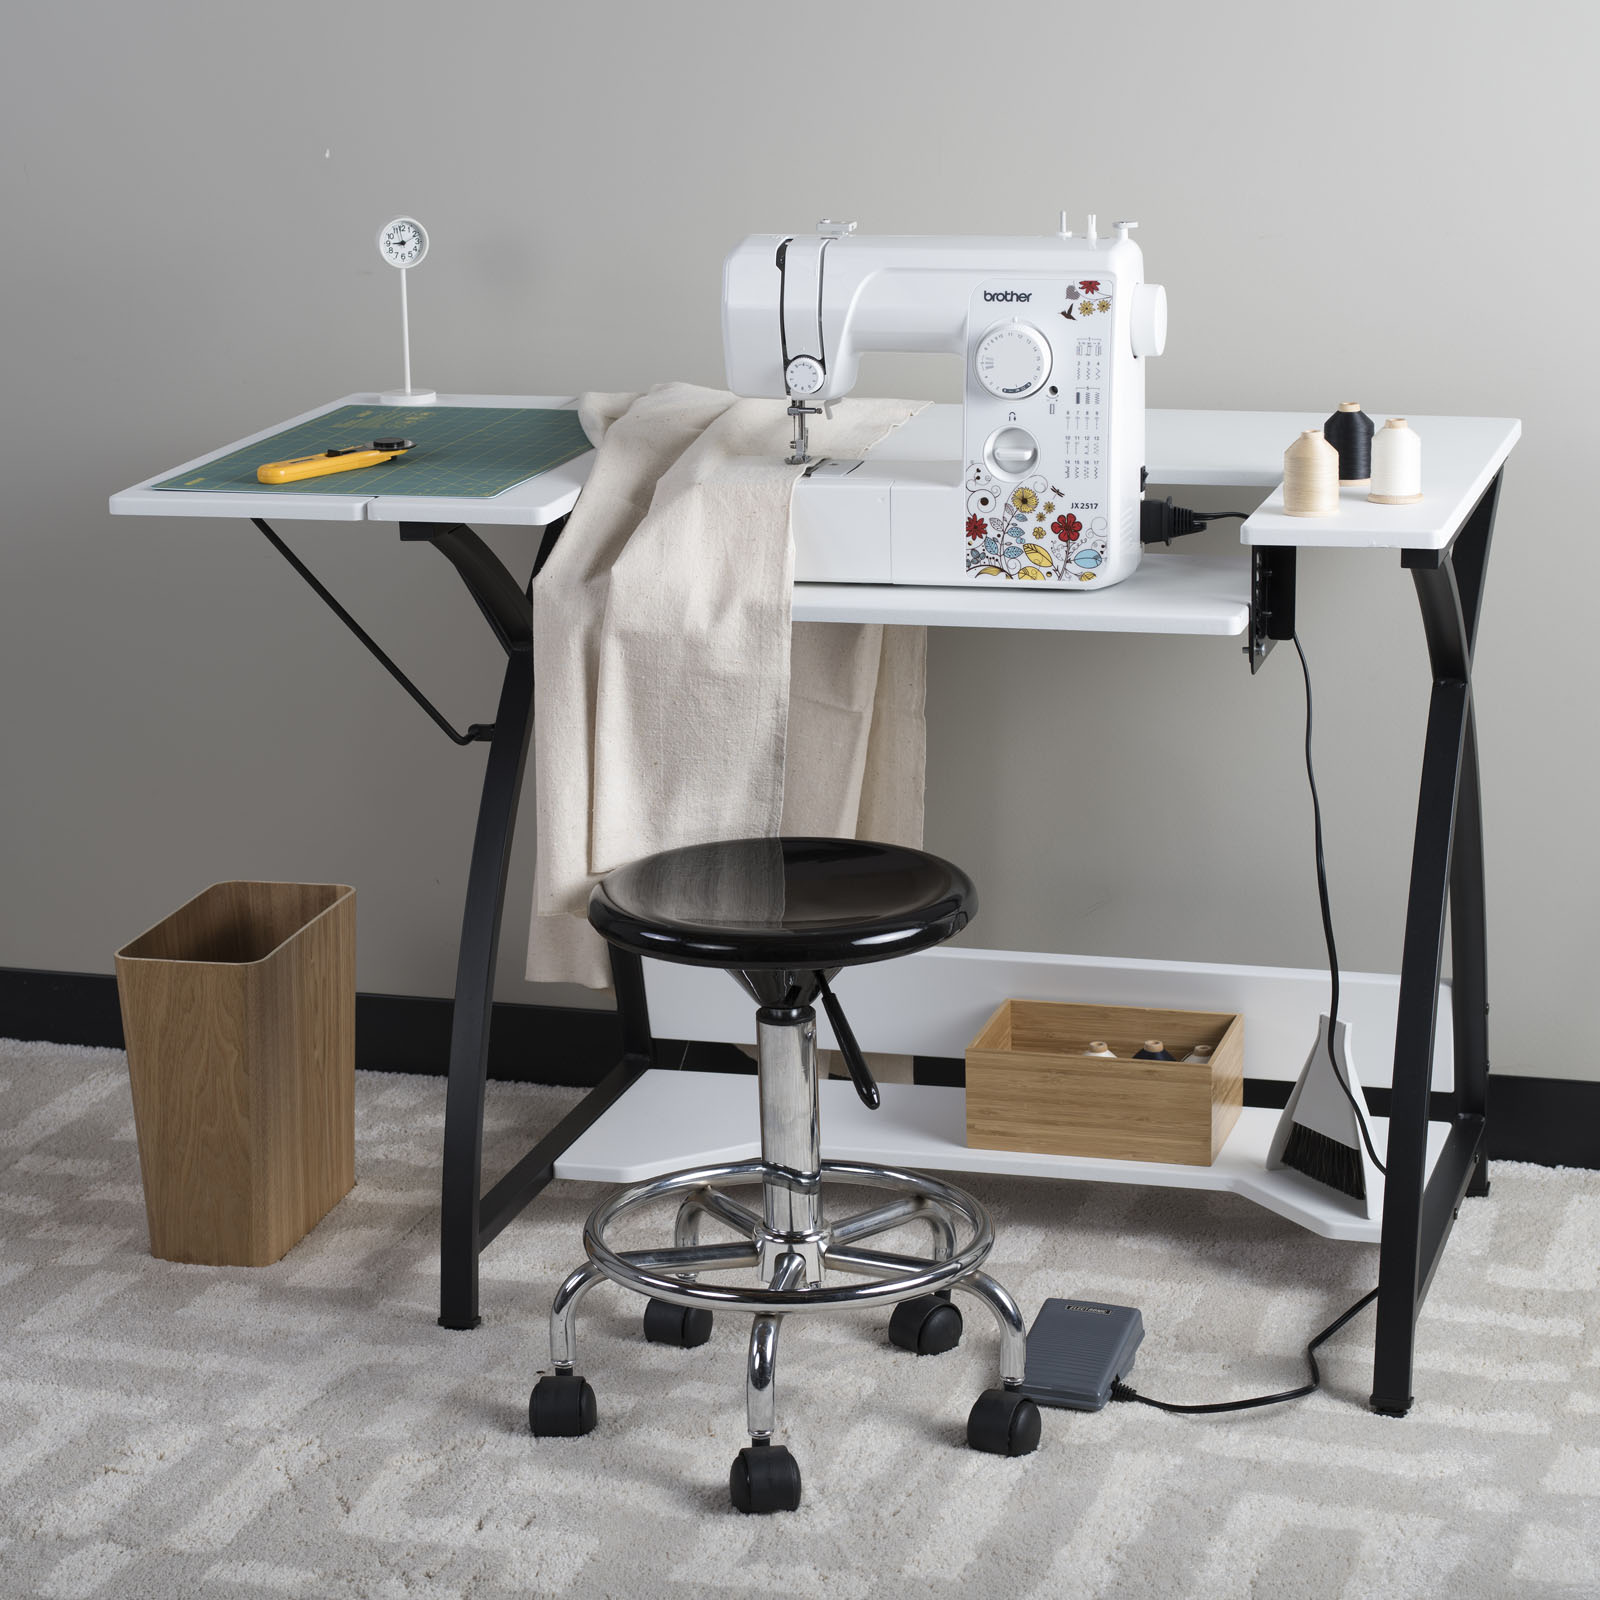 comet hobby sewing table. Black Bedroom Furniture Sets. Home Design Ideas